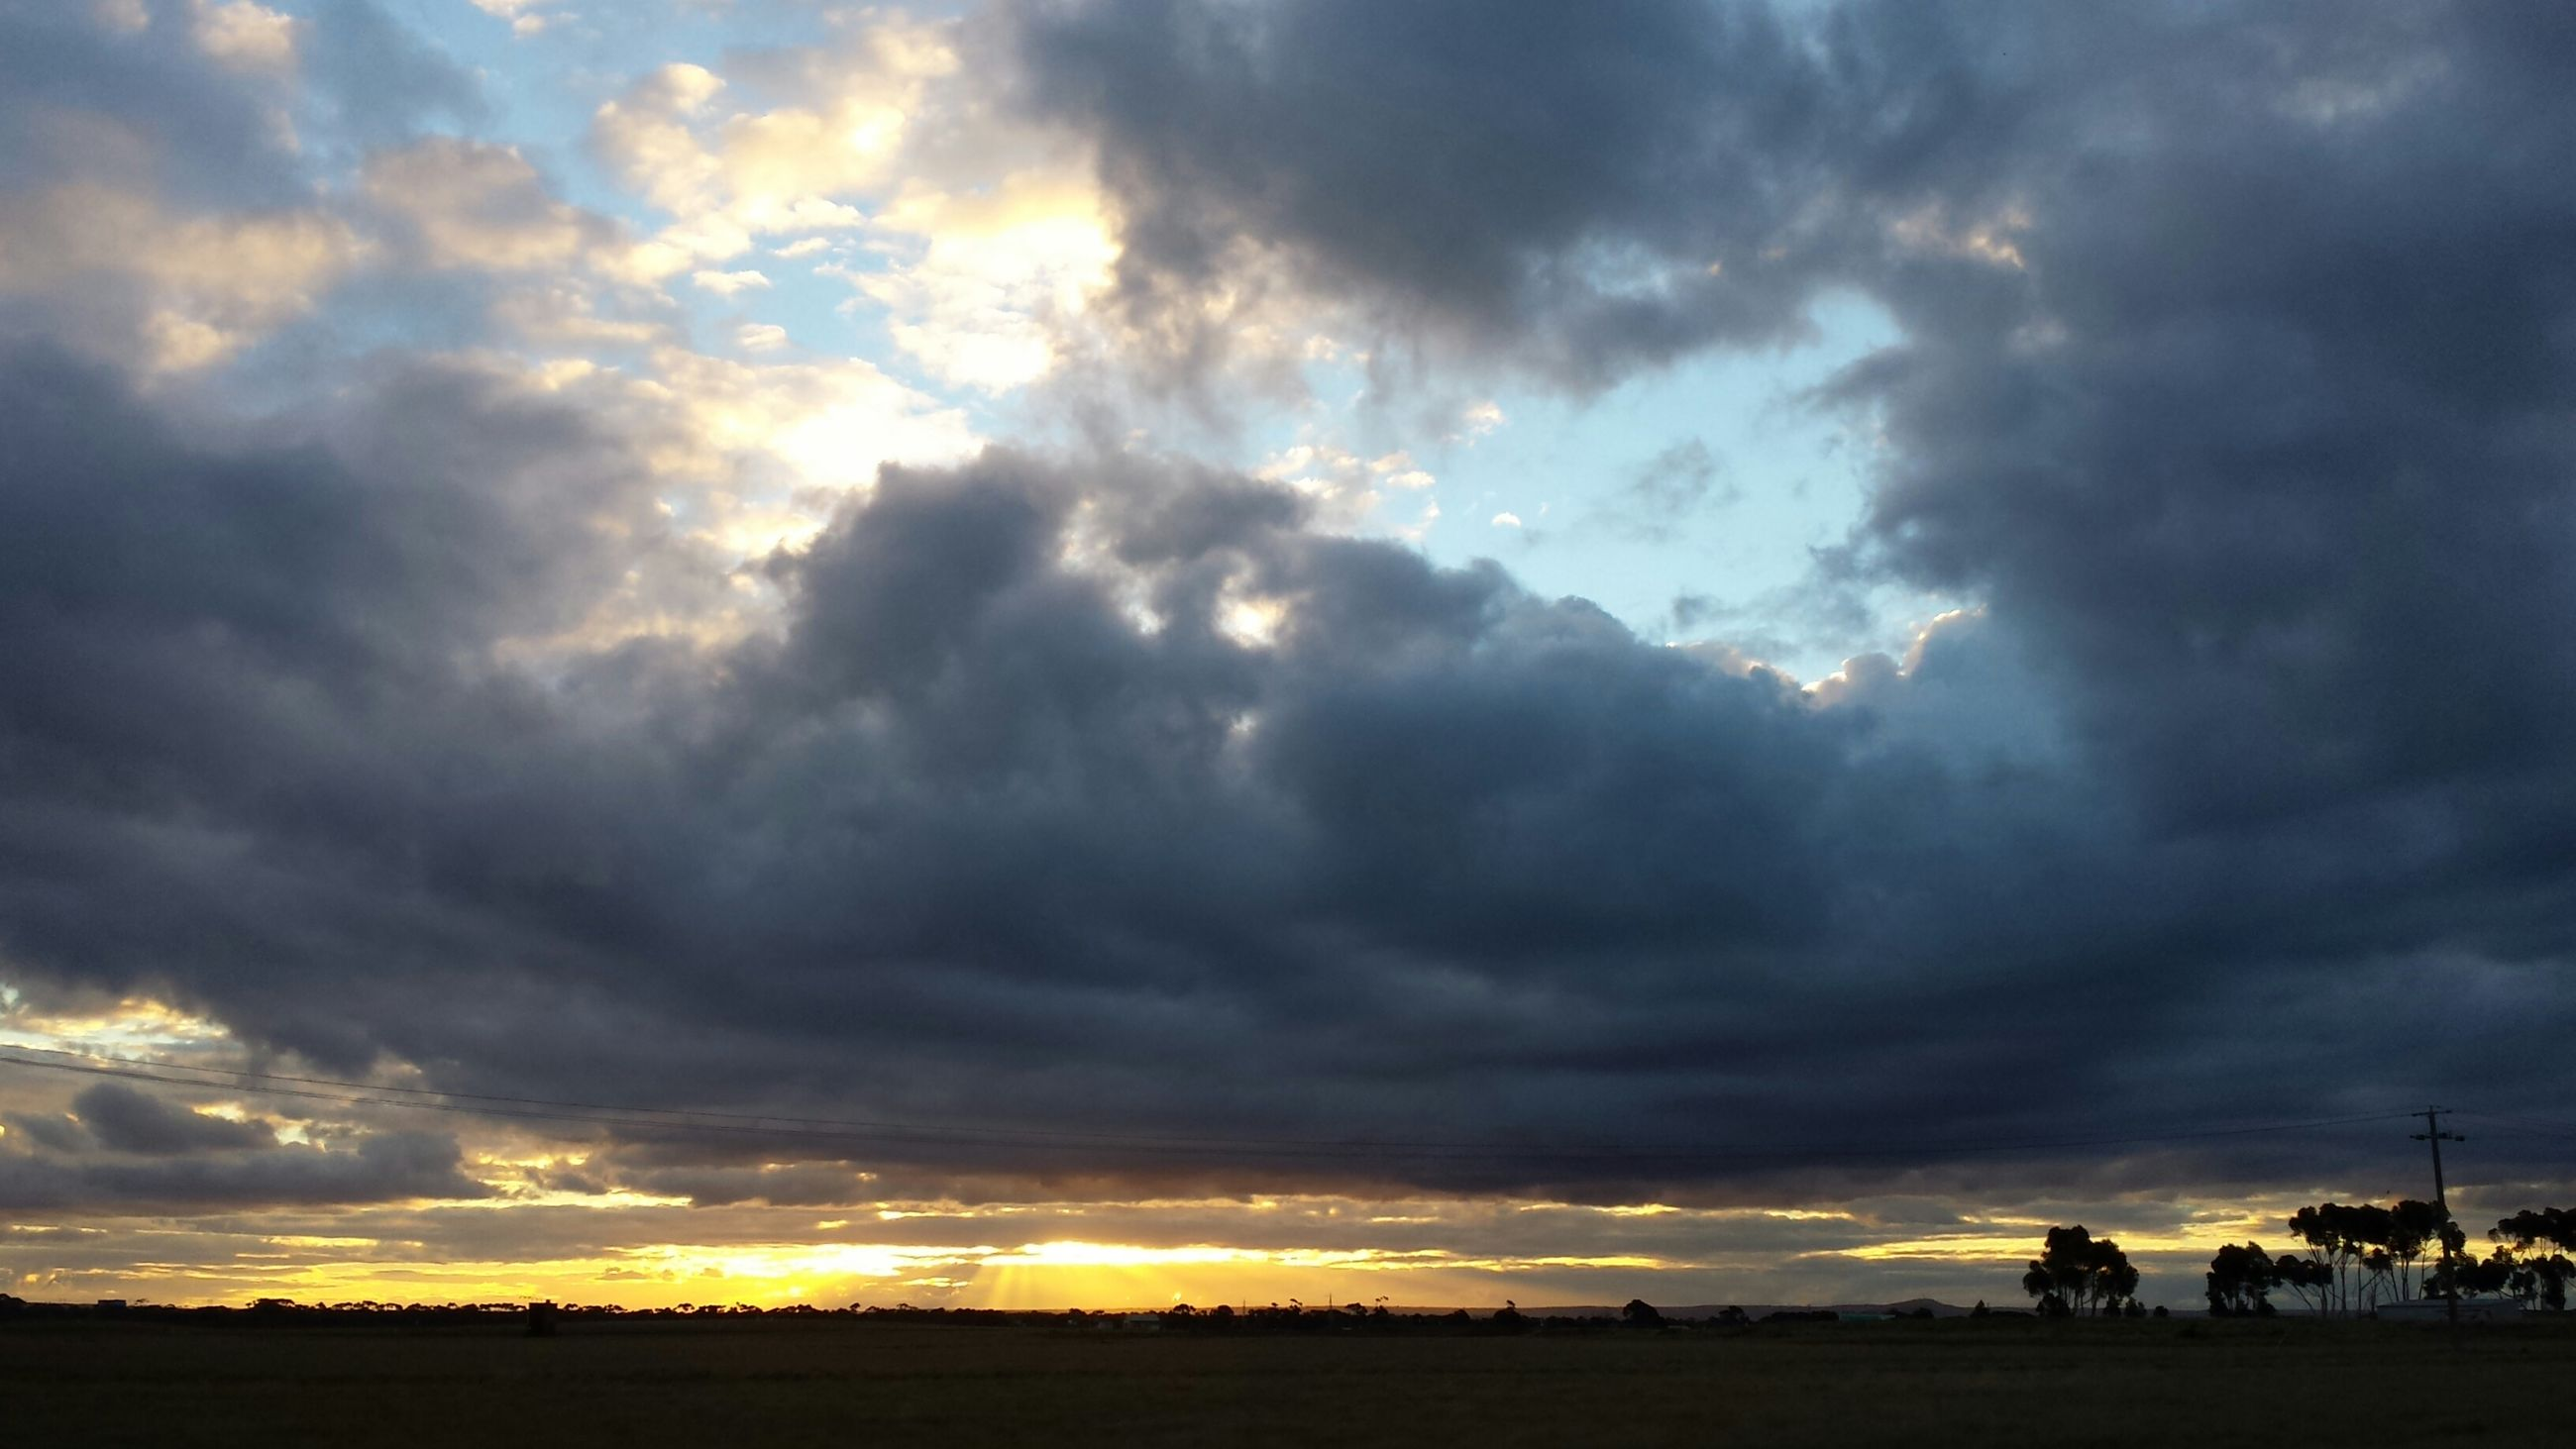 sky, sunset, cloud - sky, cloudy, scenics, tranquil scene, beauty in nature, dramatic sky, landscape, tranquility, silhouette, cloud, overcast, weather, nature, cloudscape, moody sky, idyllic, field, atmospheric mood